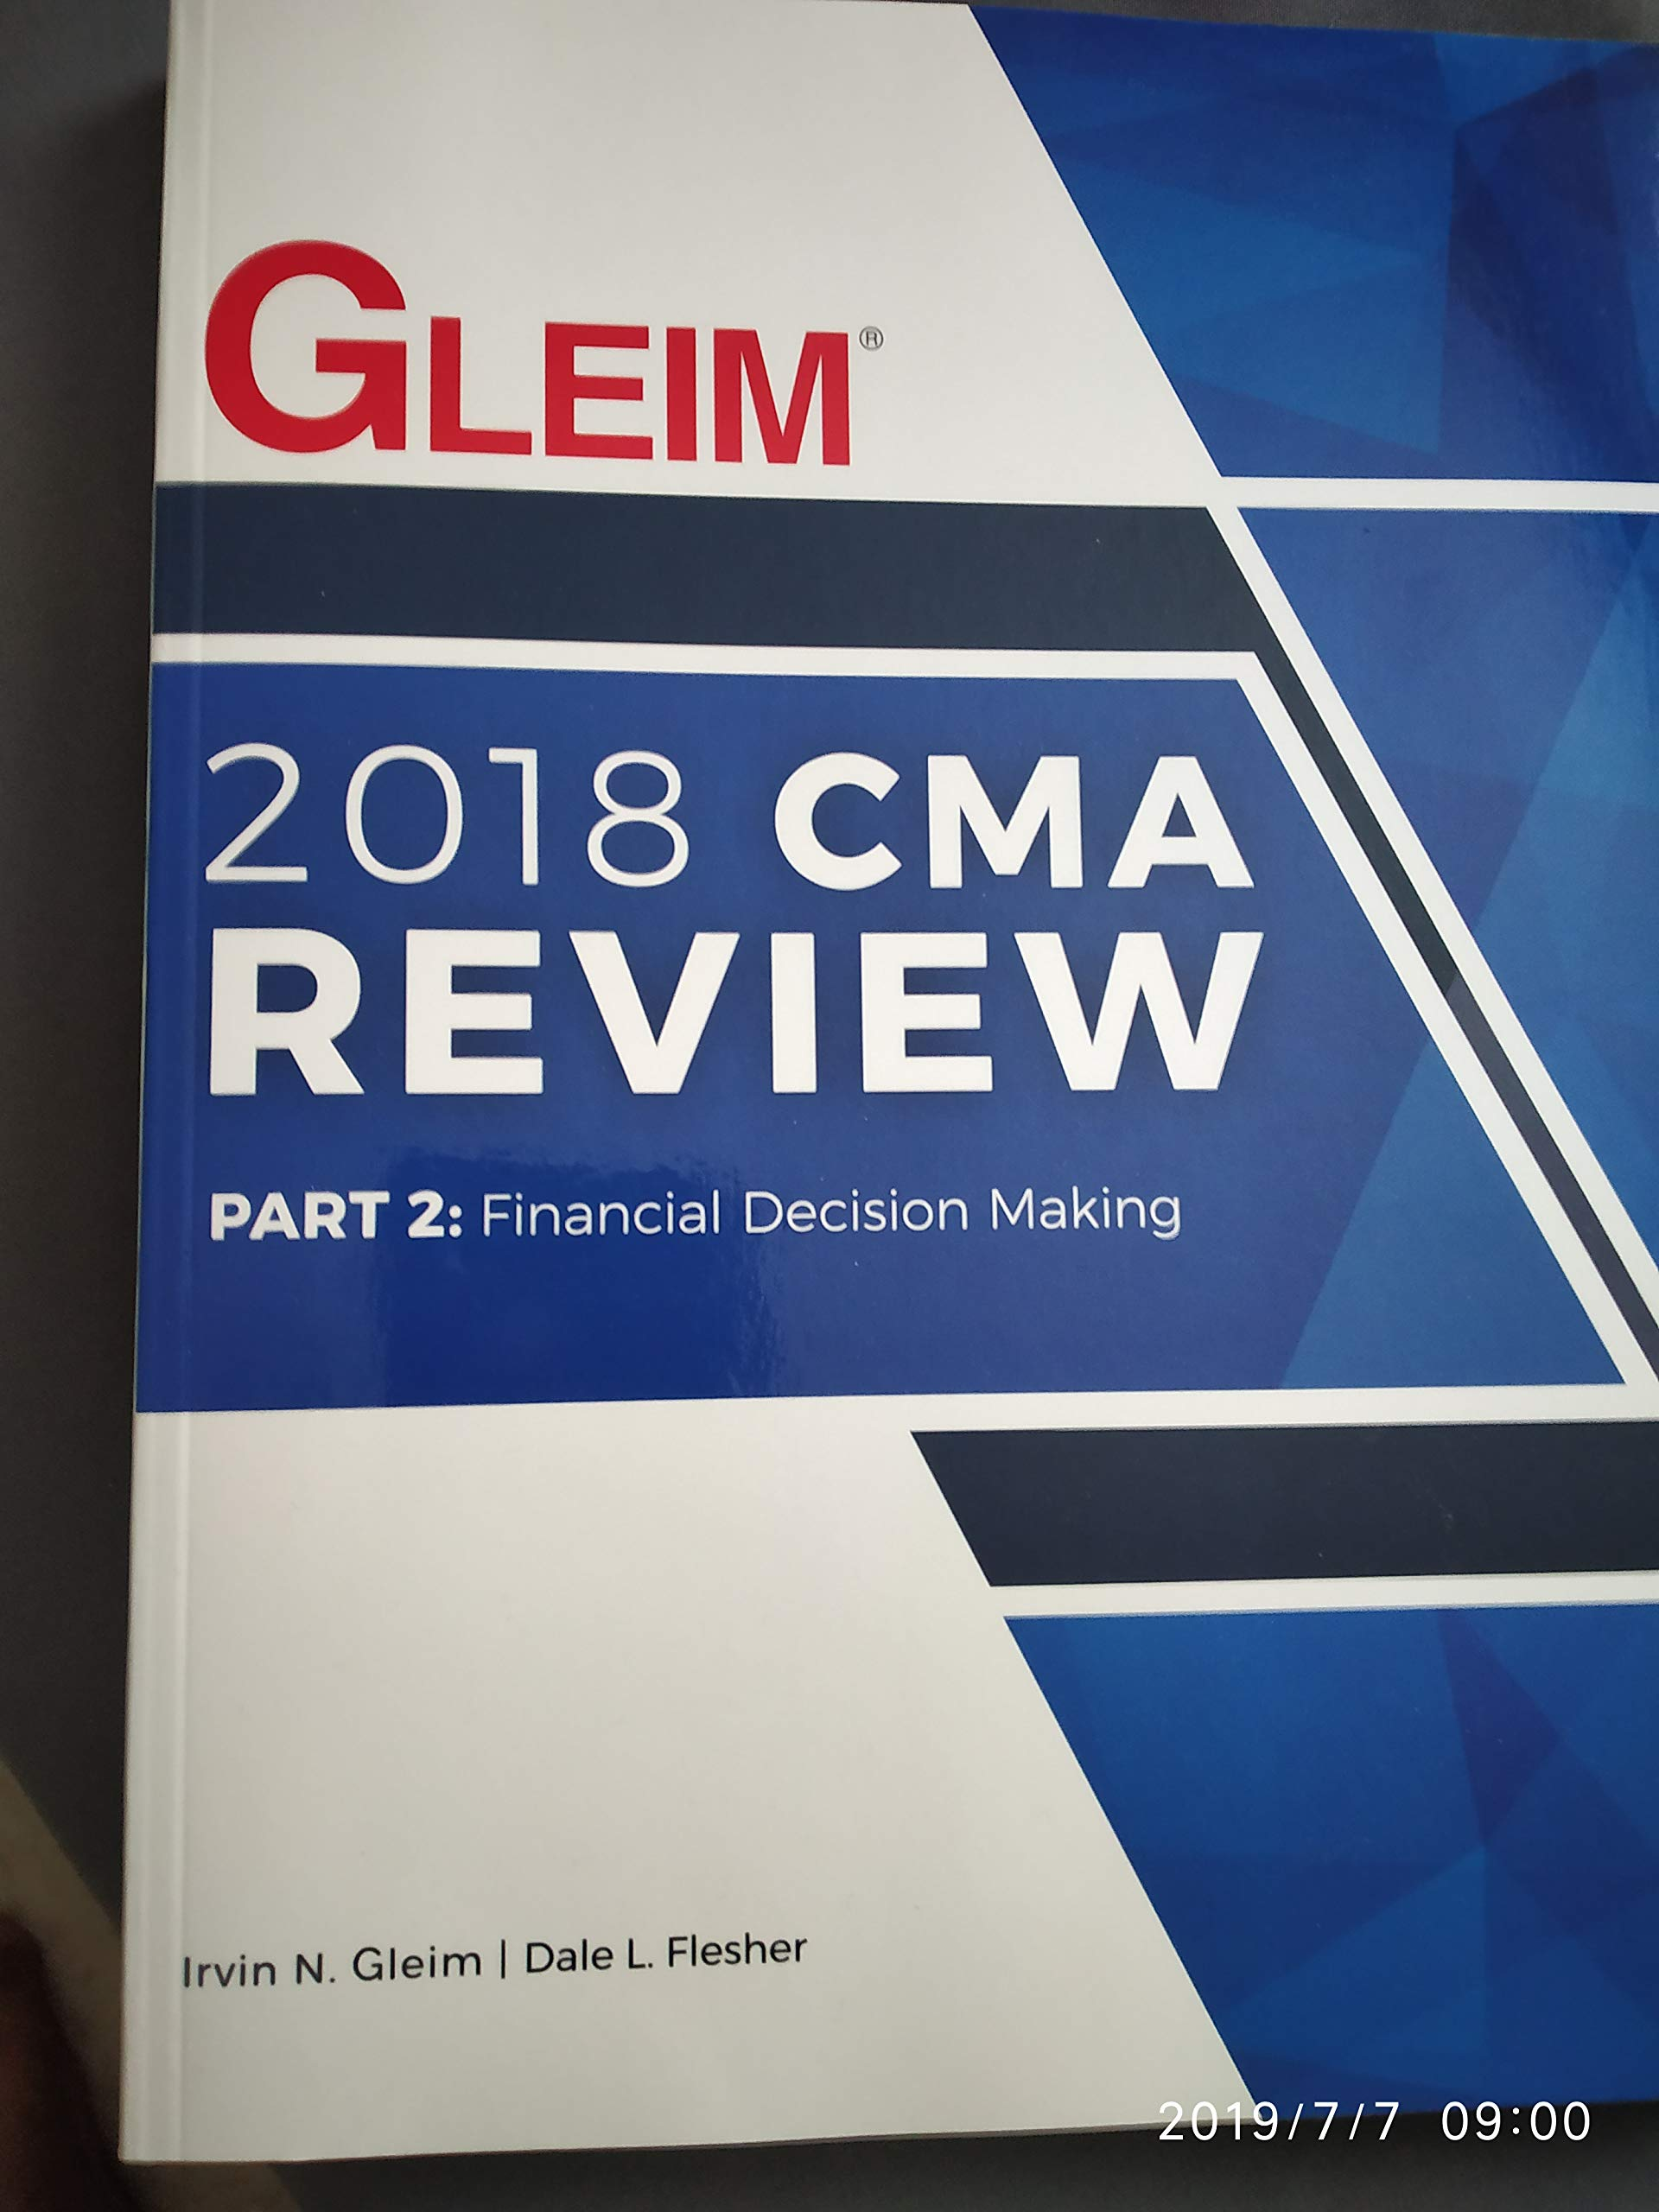 2018 CMA Review Part 2 Financial Decision Making: Irvin